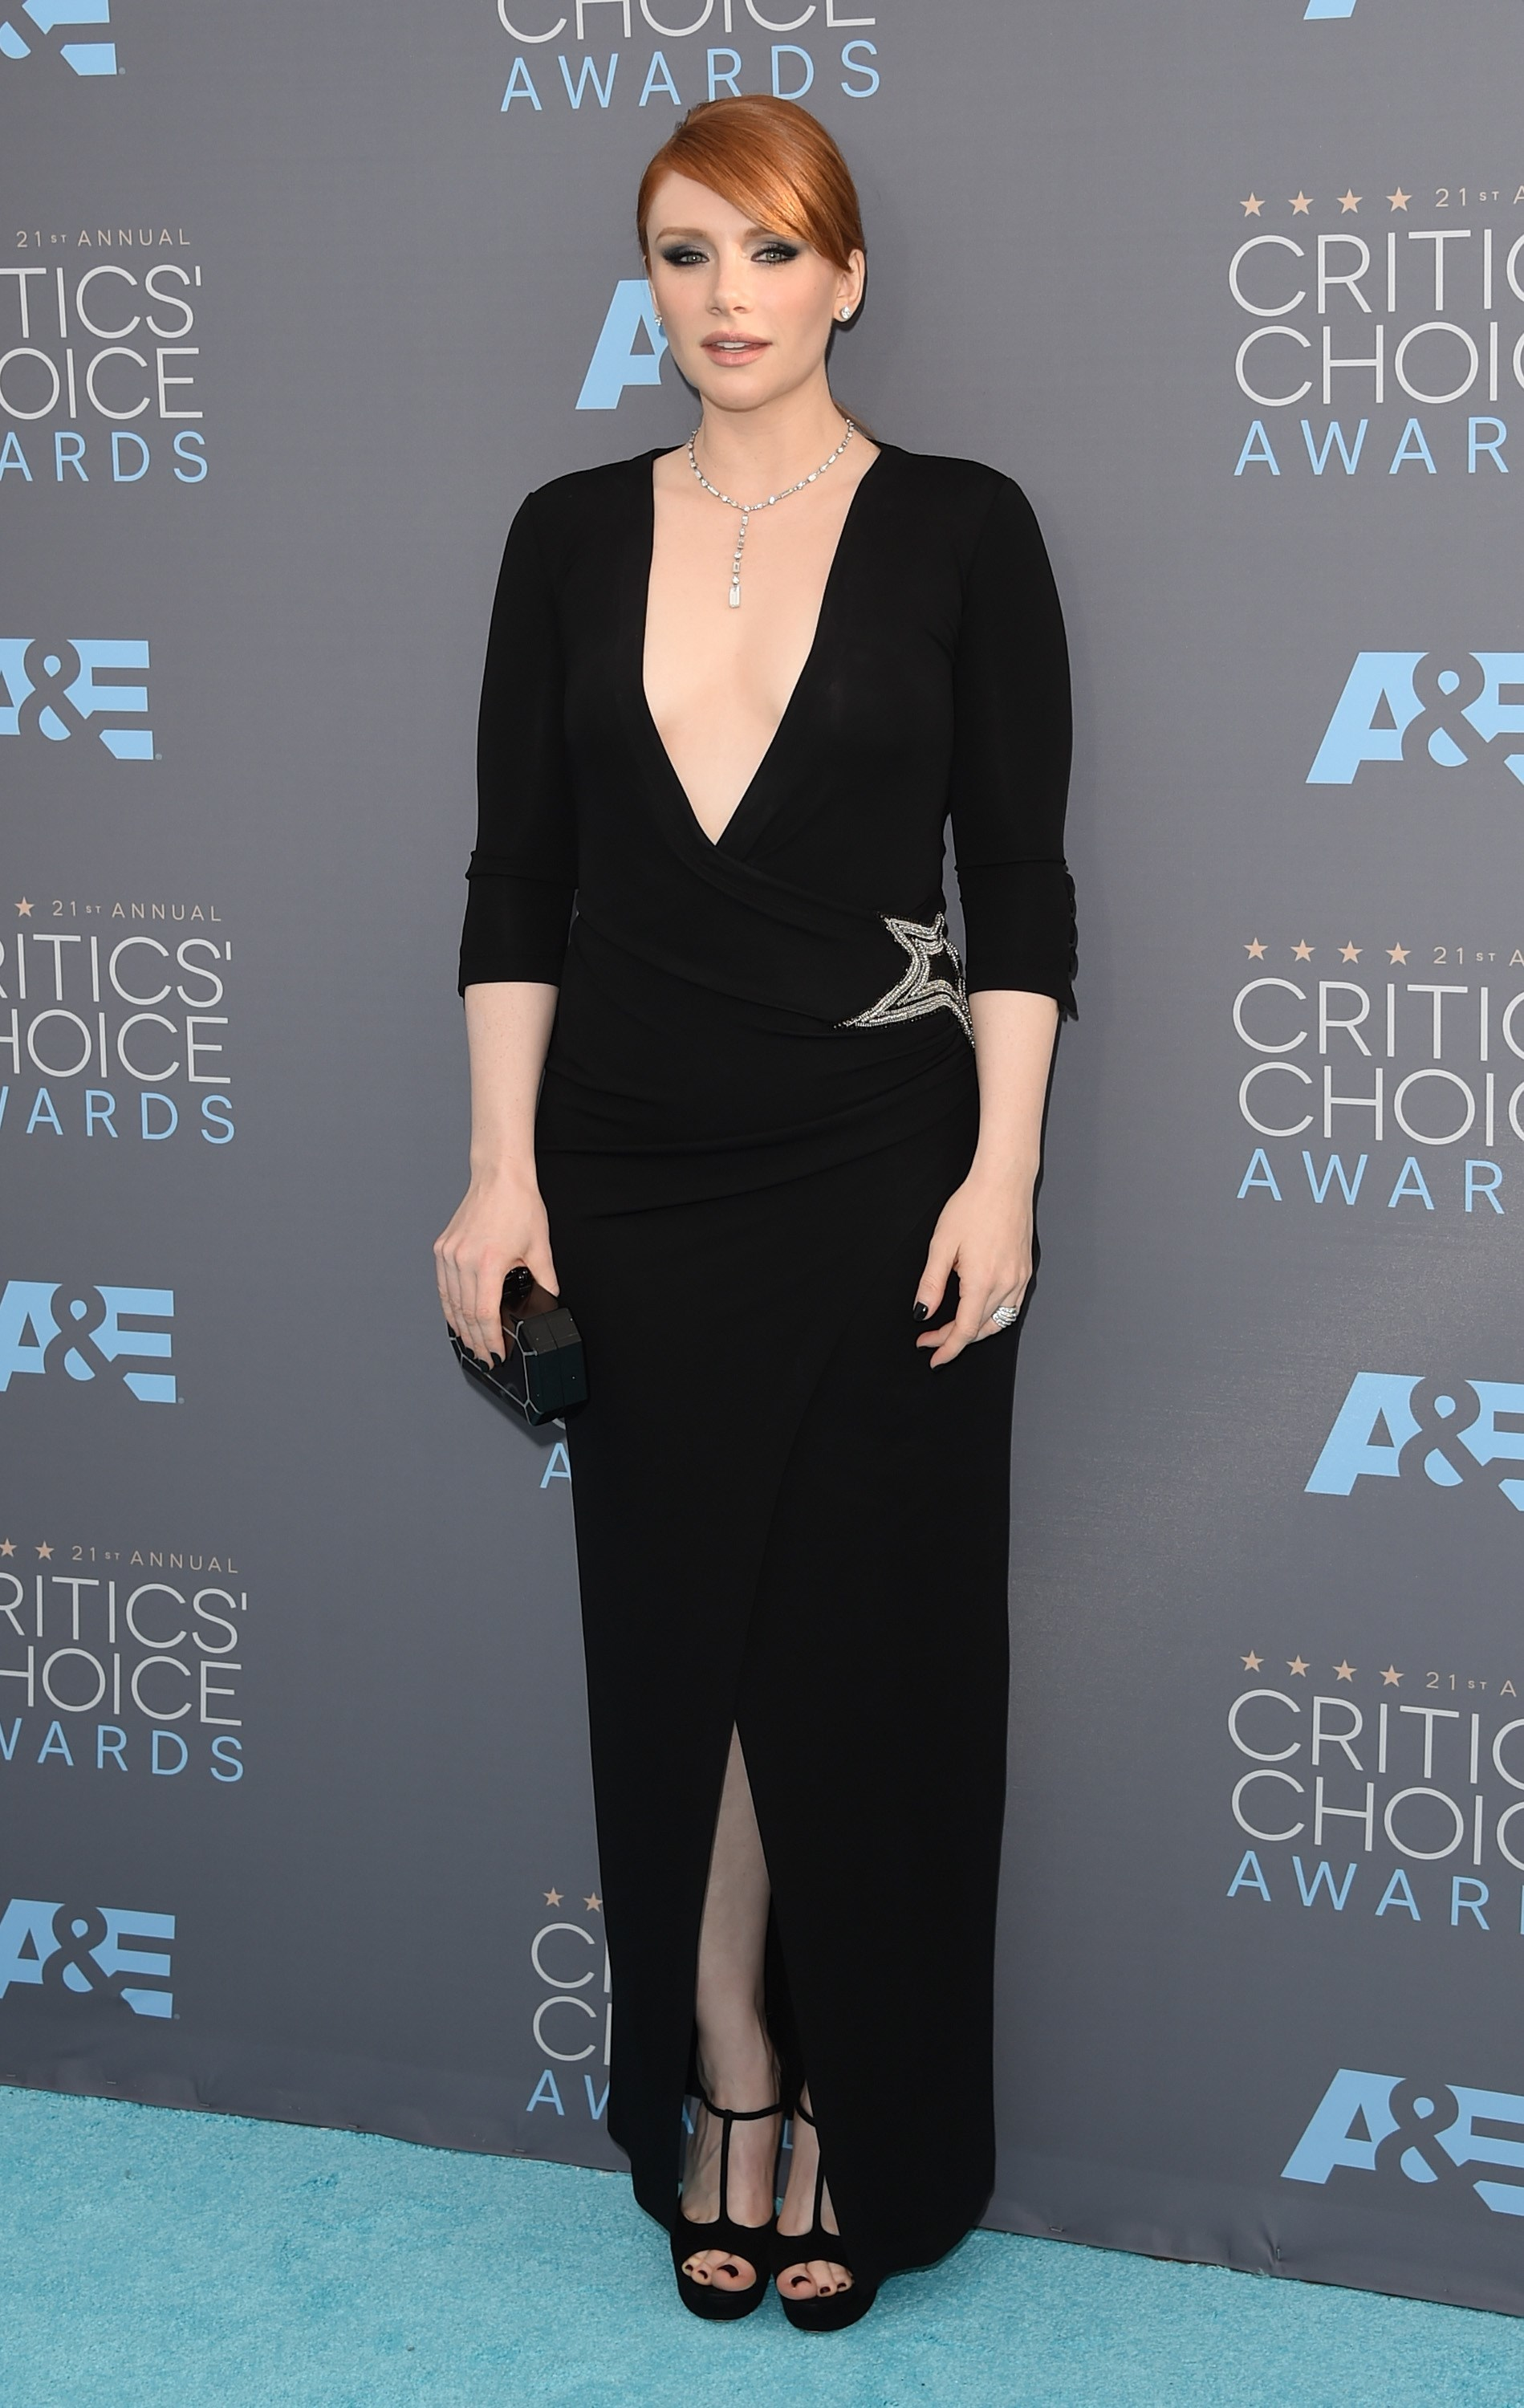 Guess where Bryce Dallas Howard's Critics' Choice dress came from